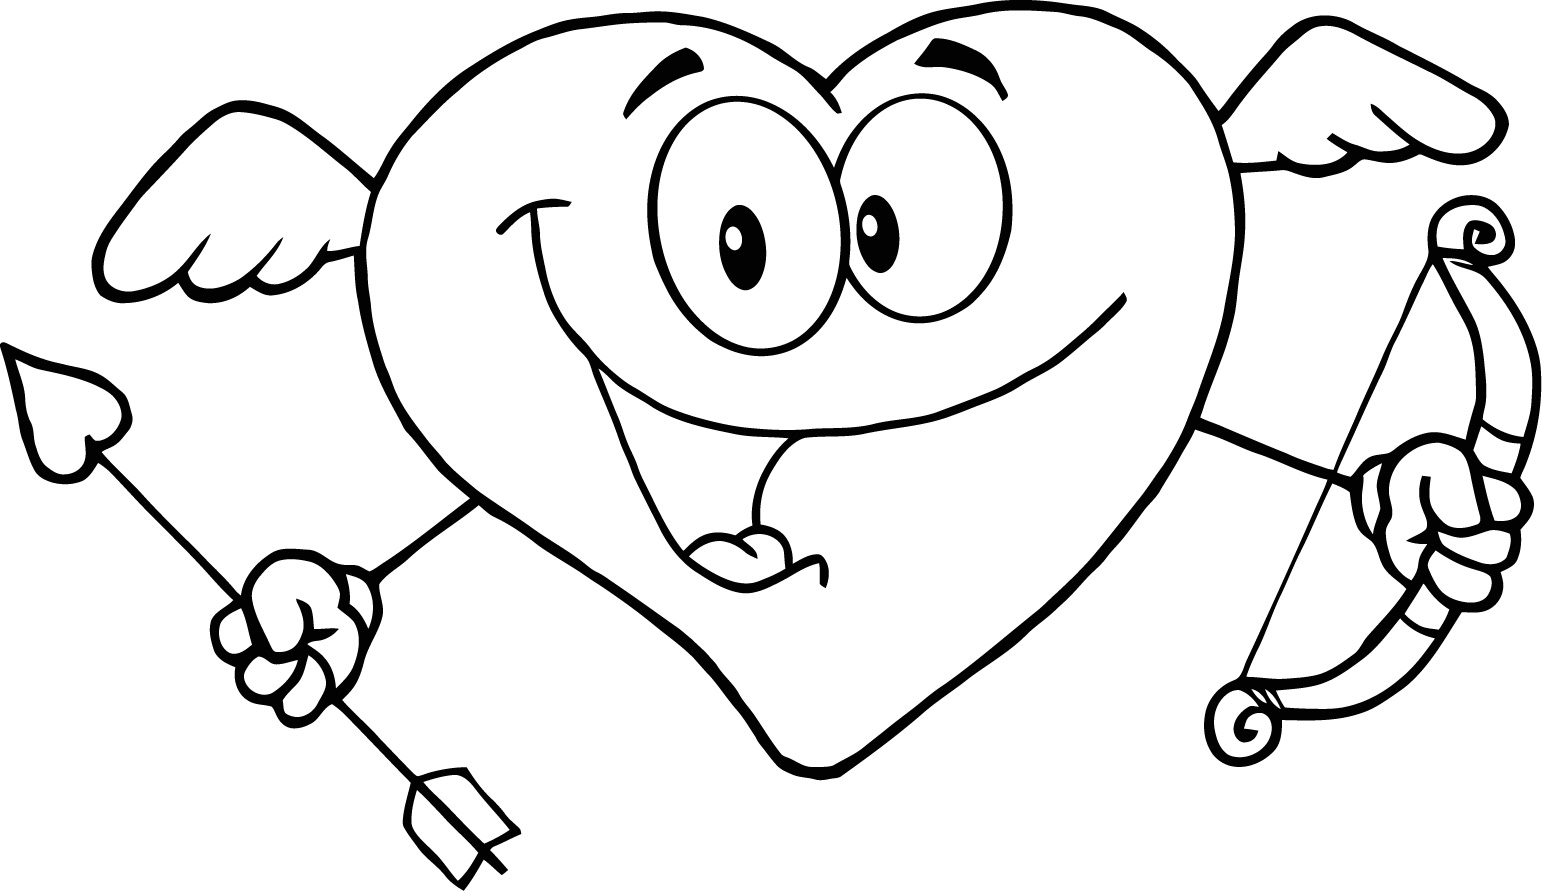 coloring faces free printable smiley face coloring pages for kids coloring faces